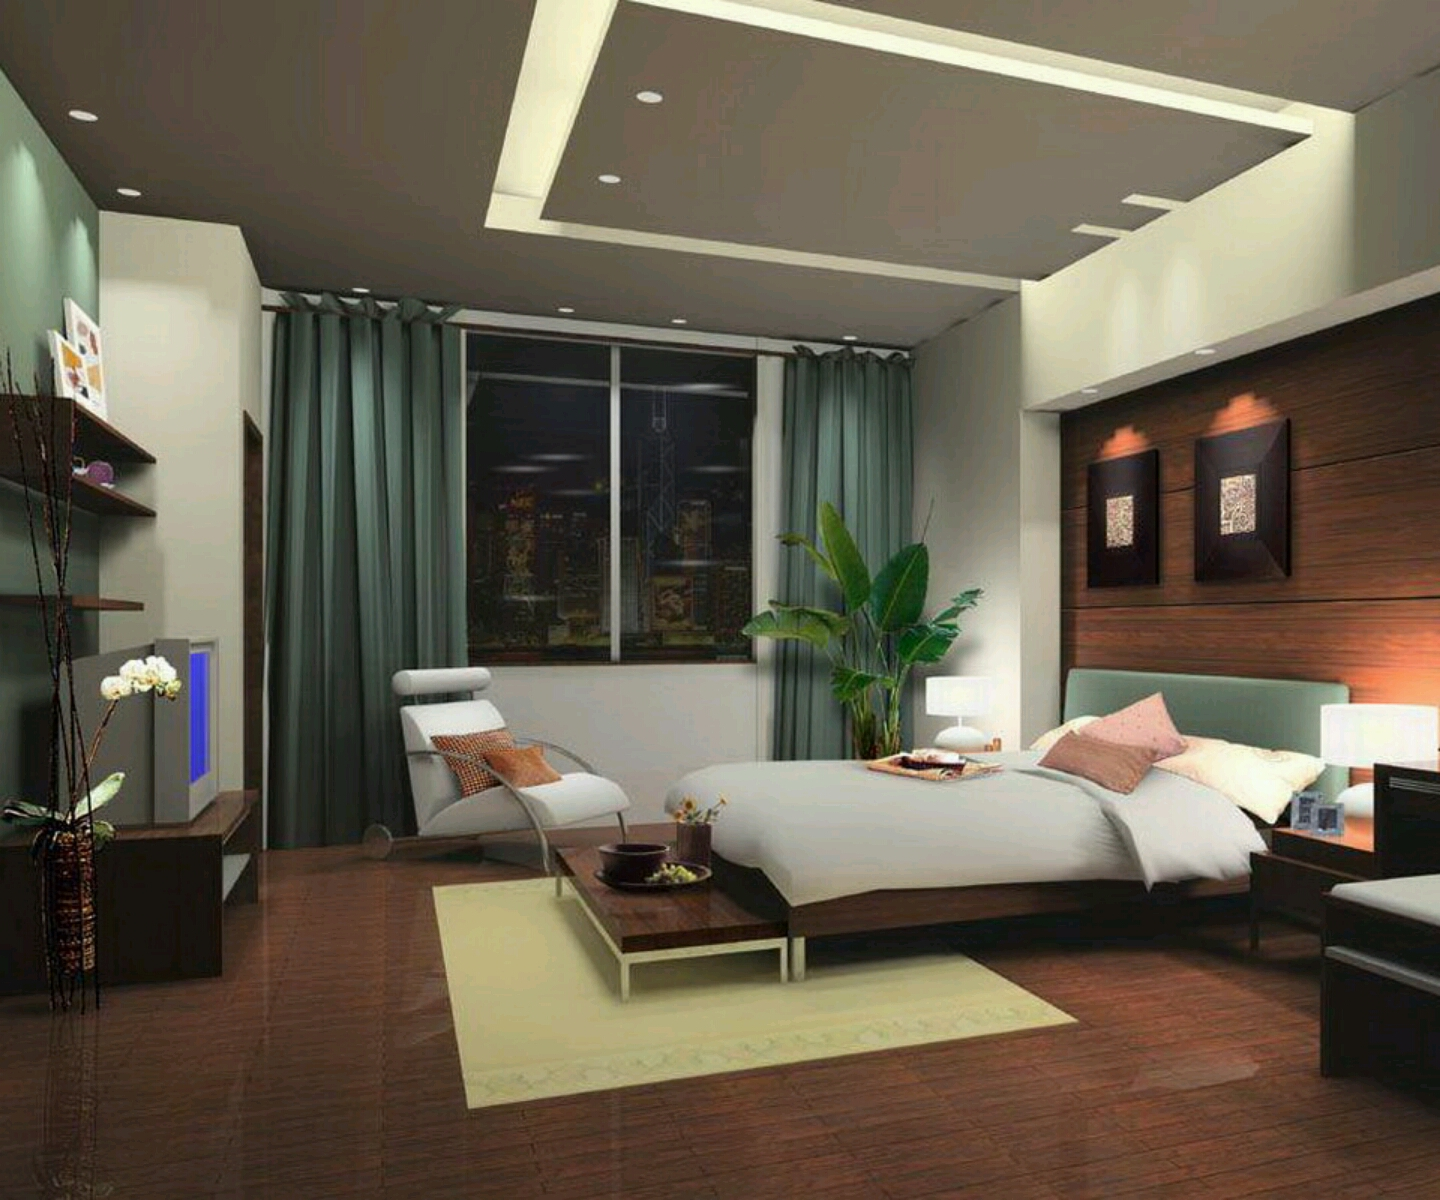 New home designs latest modern bedrooms designs best ideas for Home design ideas 2016